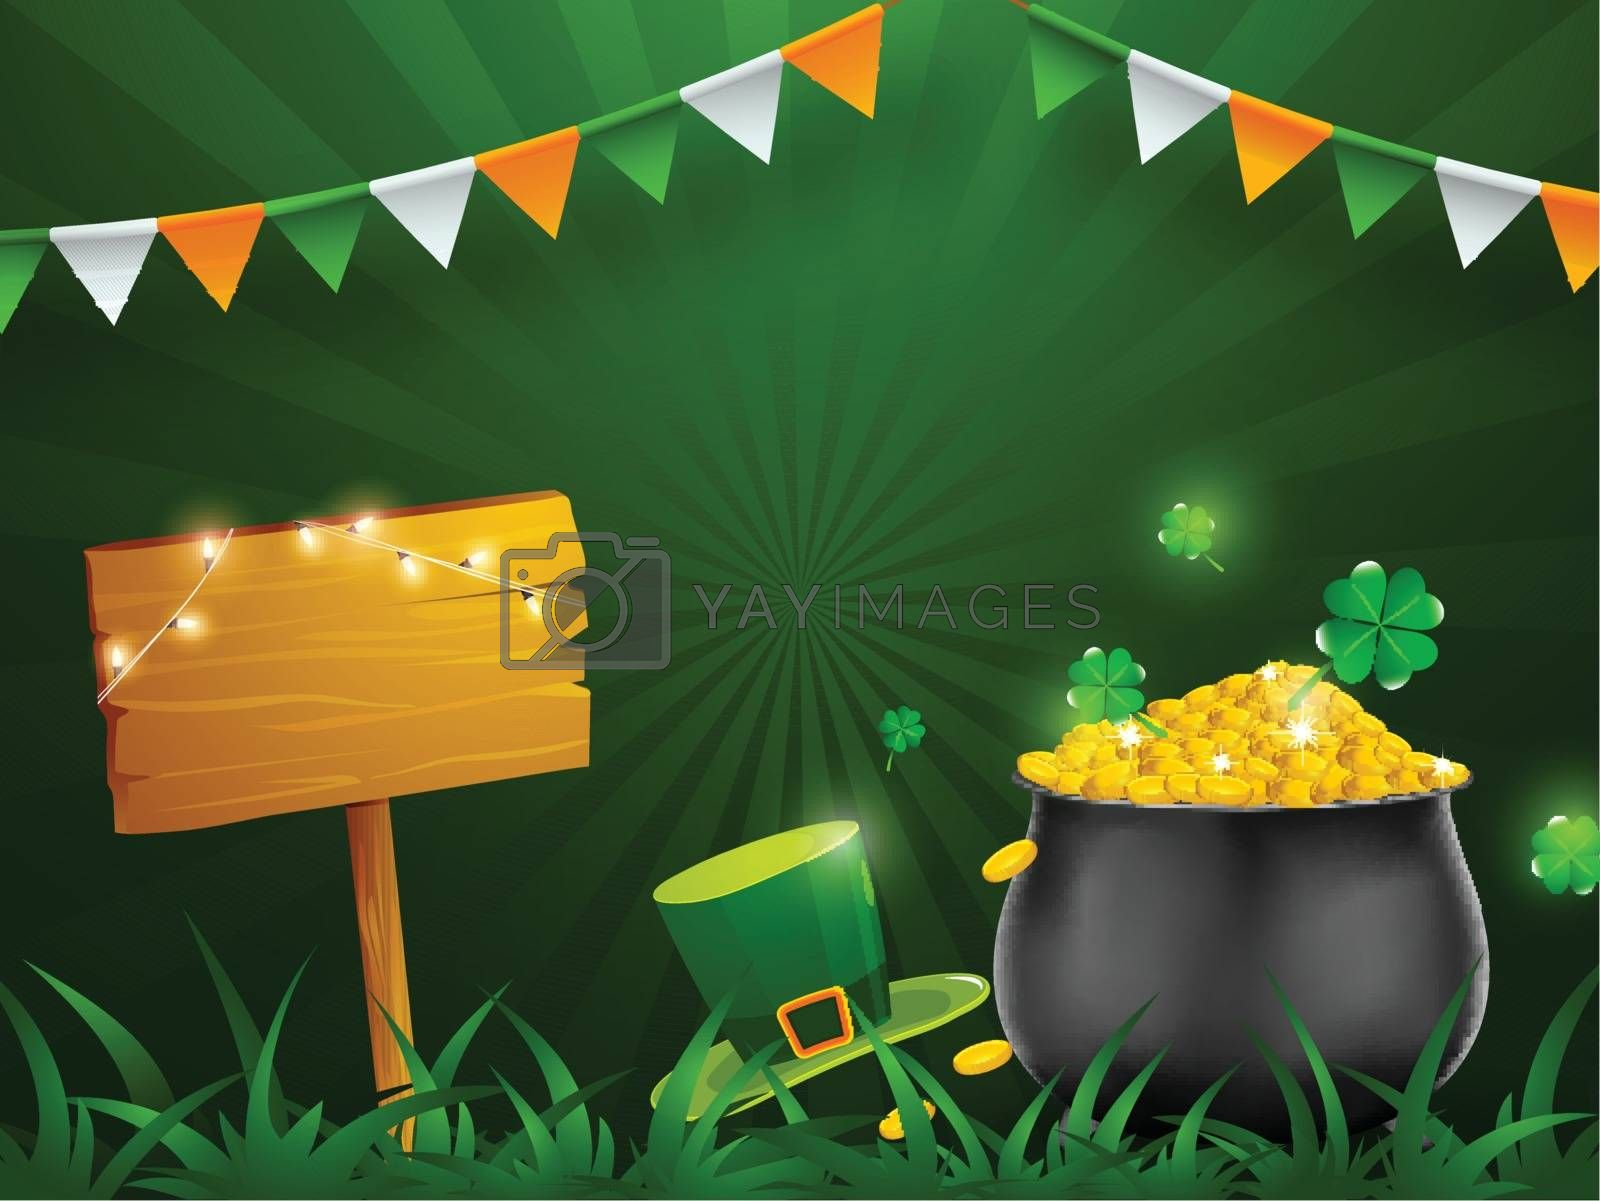 Royalty free image of St. Patrick's Day celebration concept, illustration of tradition by aispl